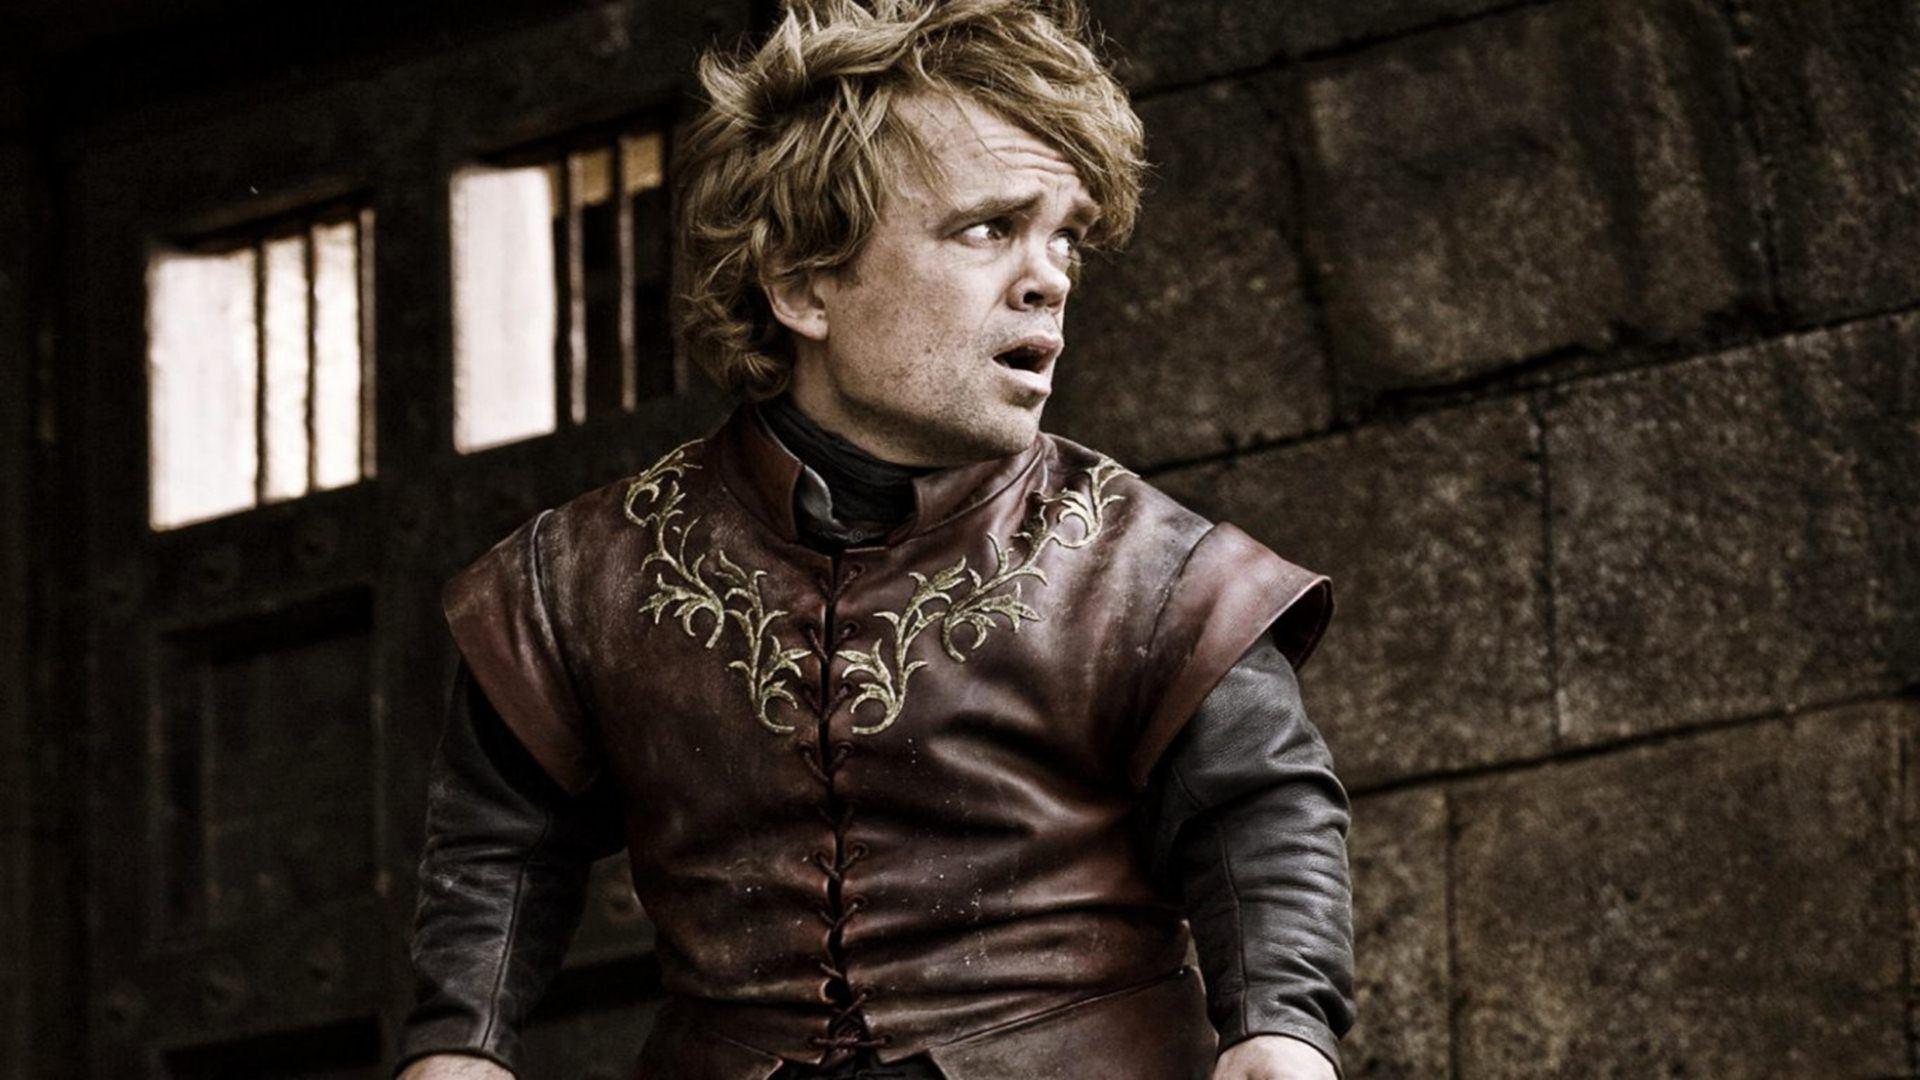 hottest game of thrones men tyrion